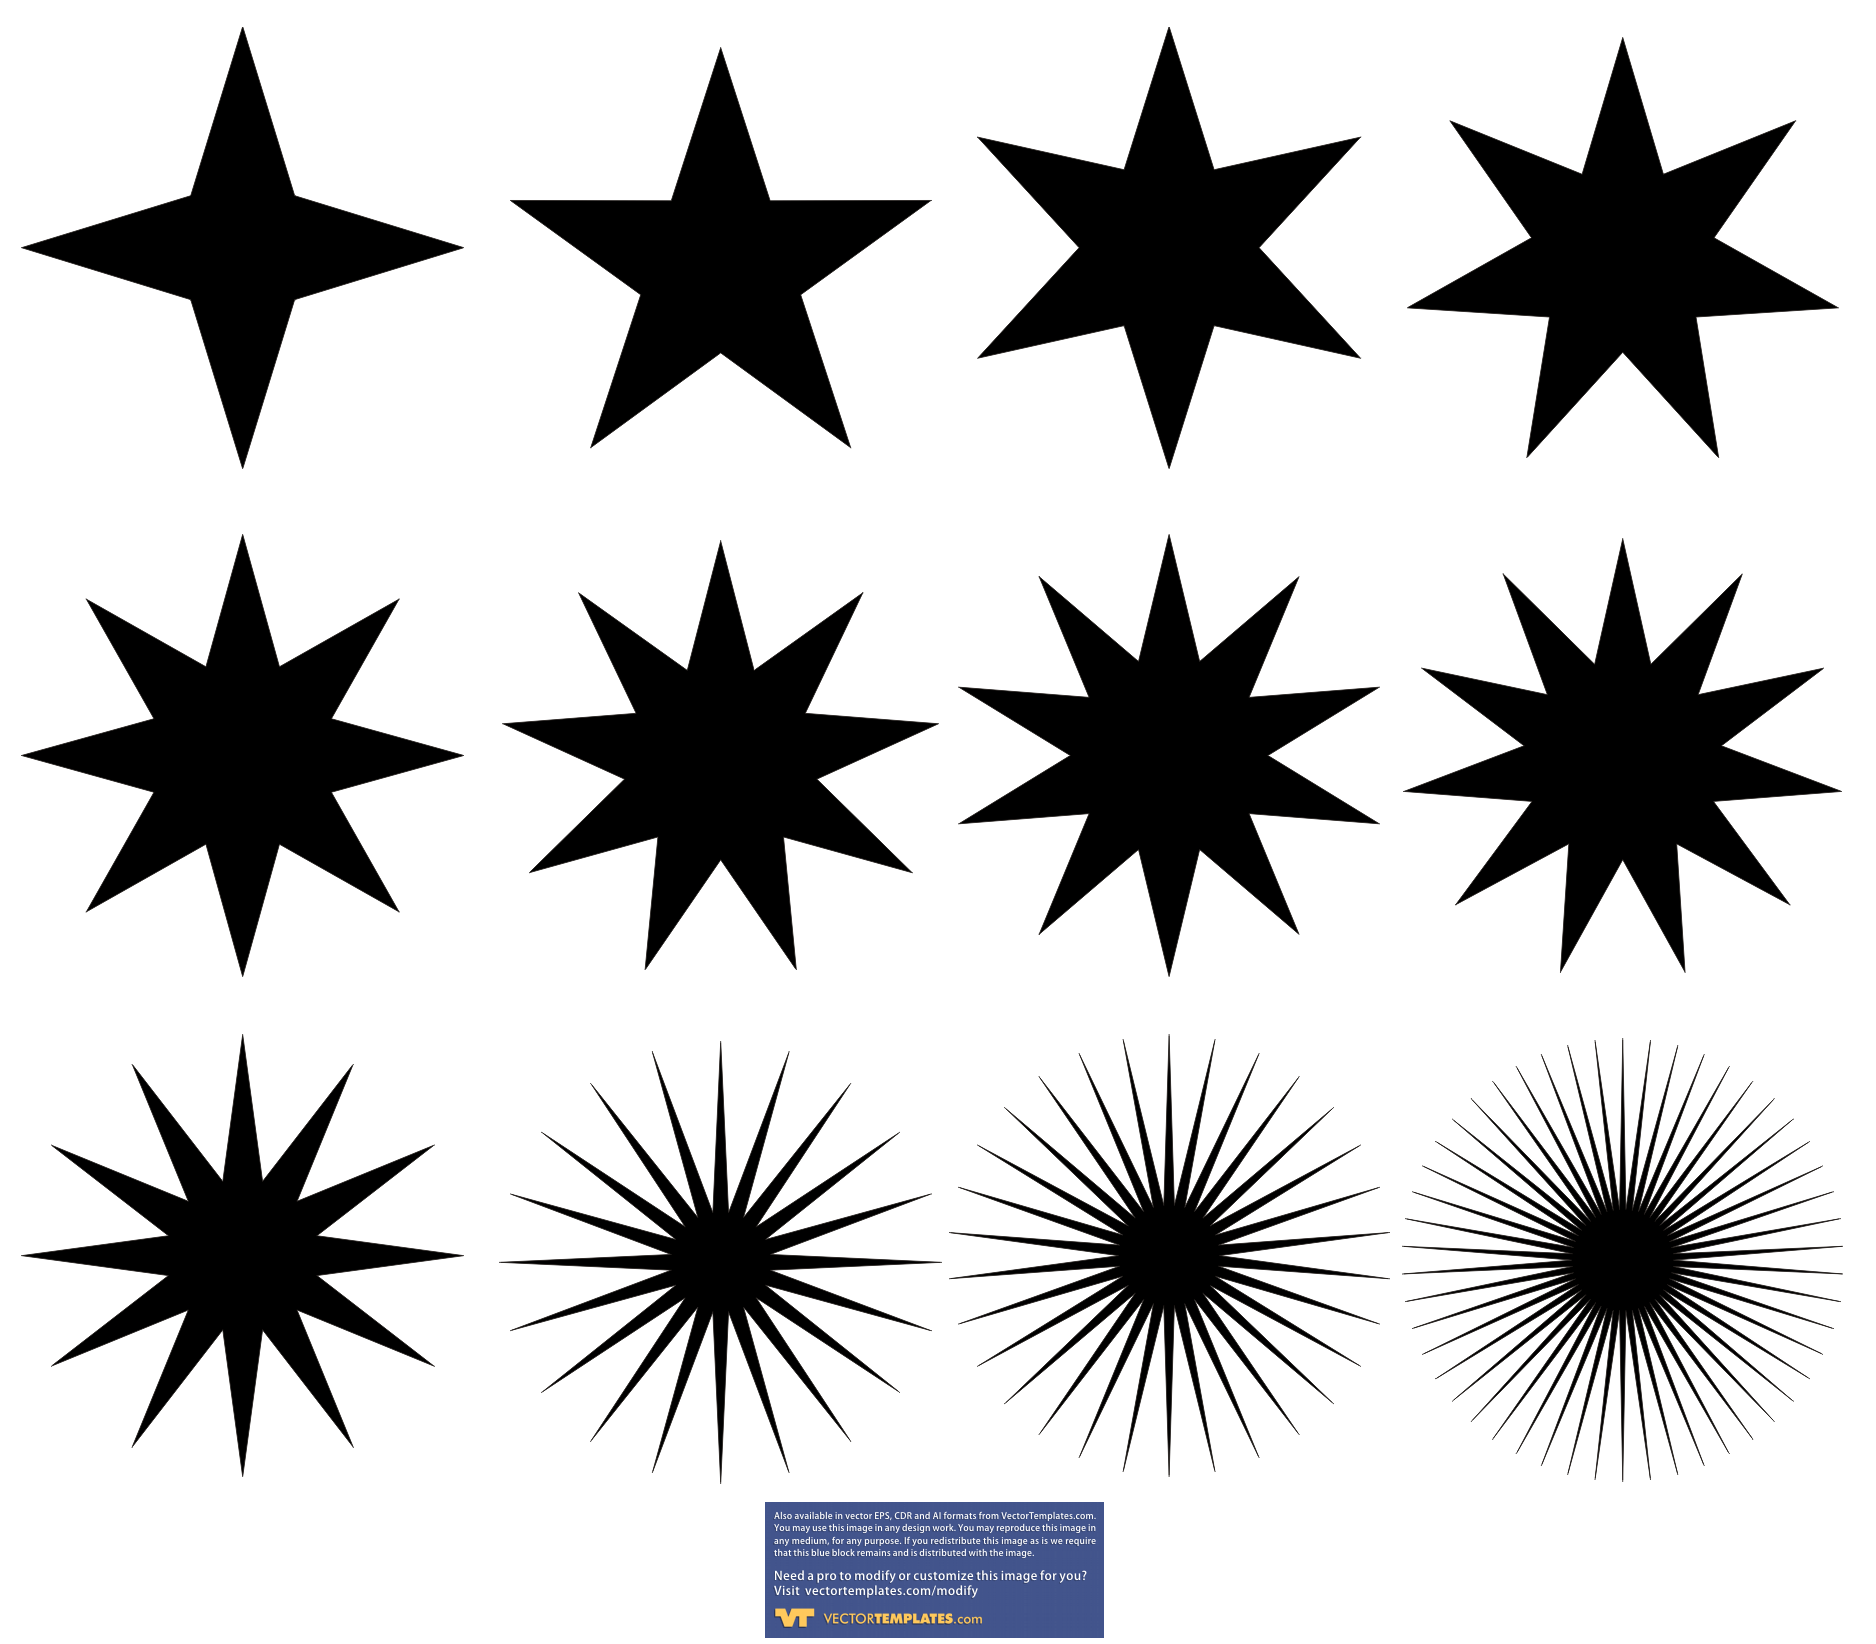 16 Star Graphic Vector Art Images